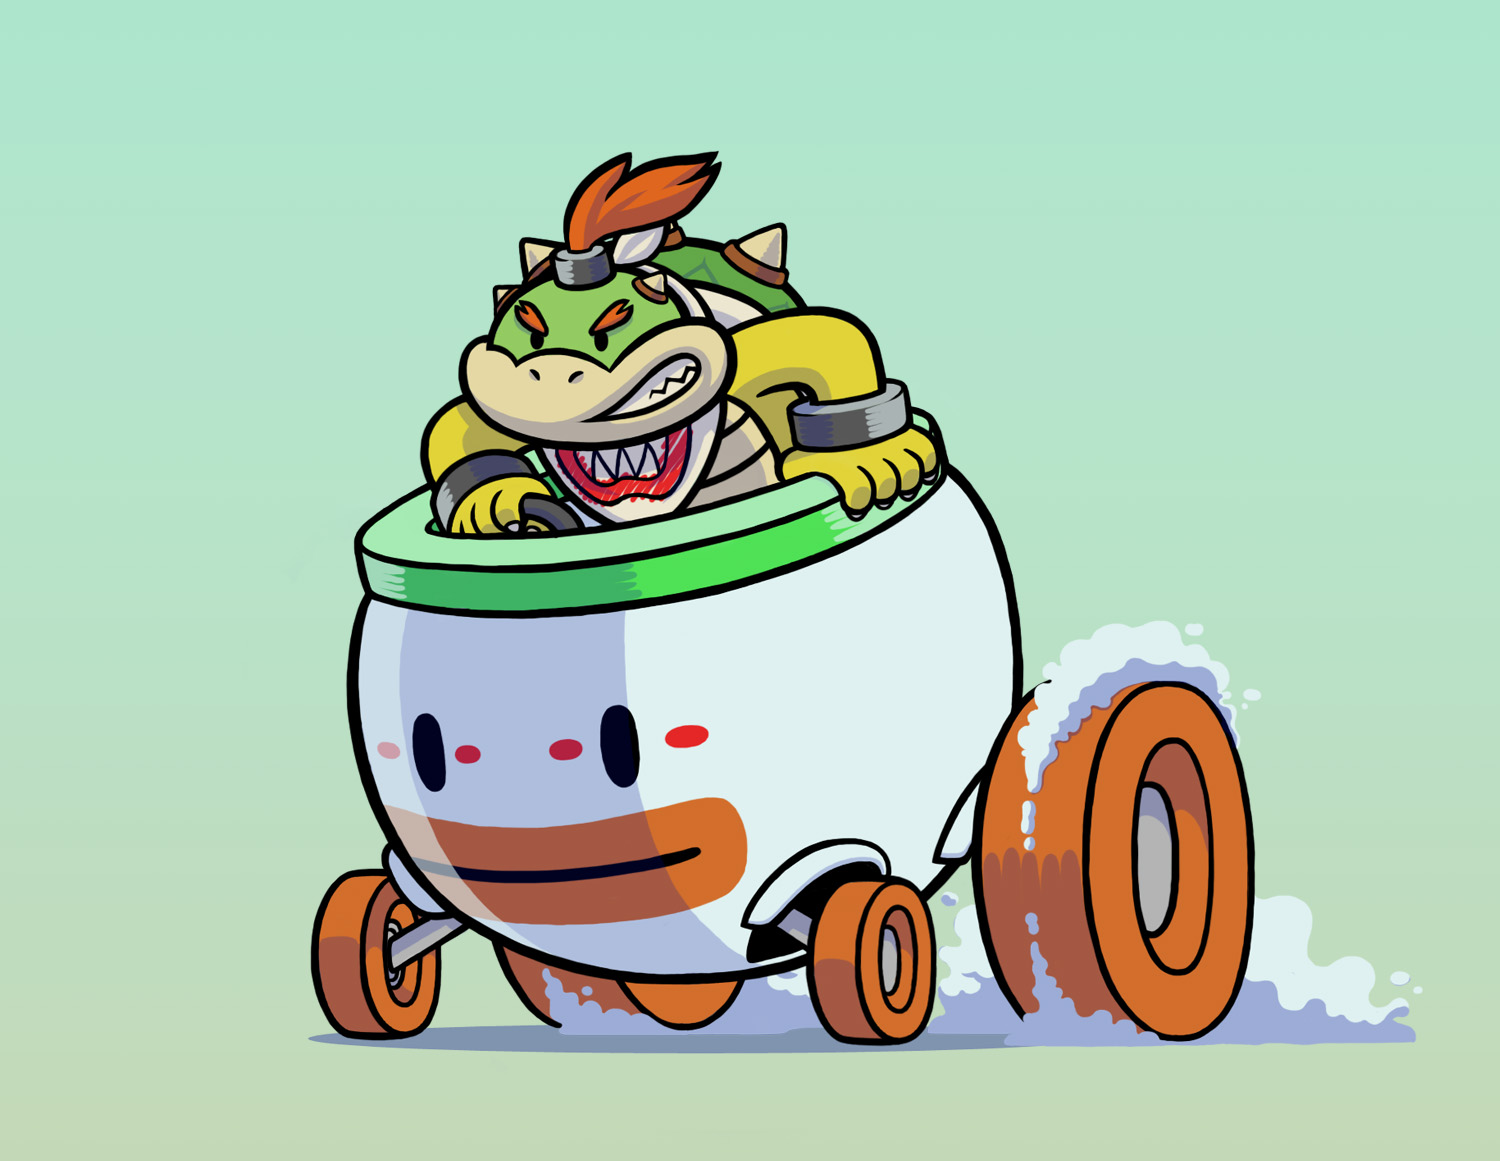 Imagemy Concept For Bowser Jr Mario Kart 8 Koopa Clown